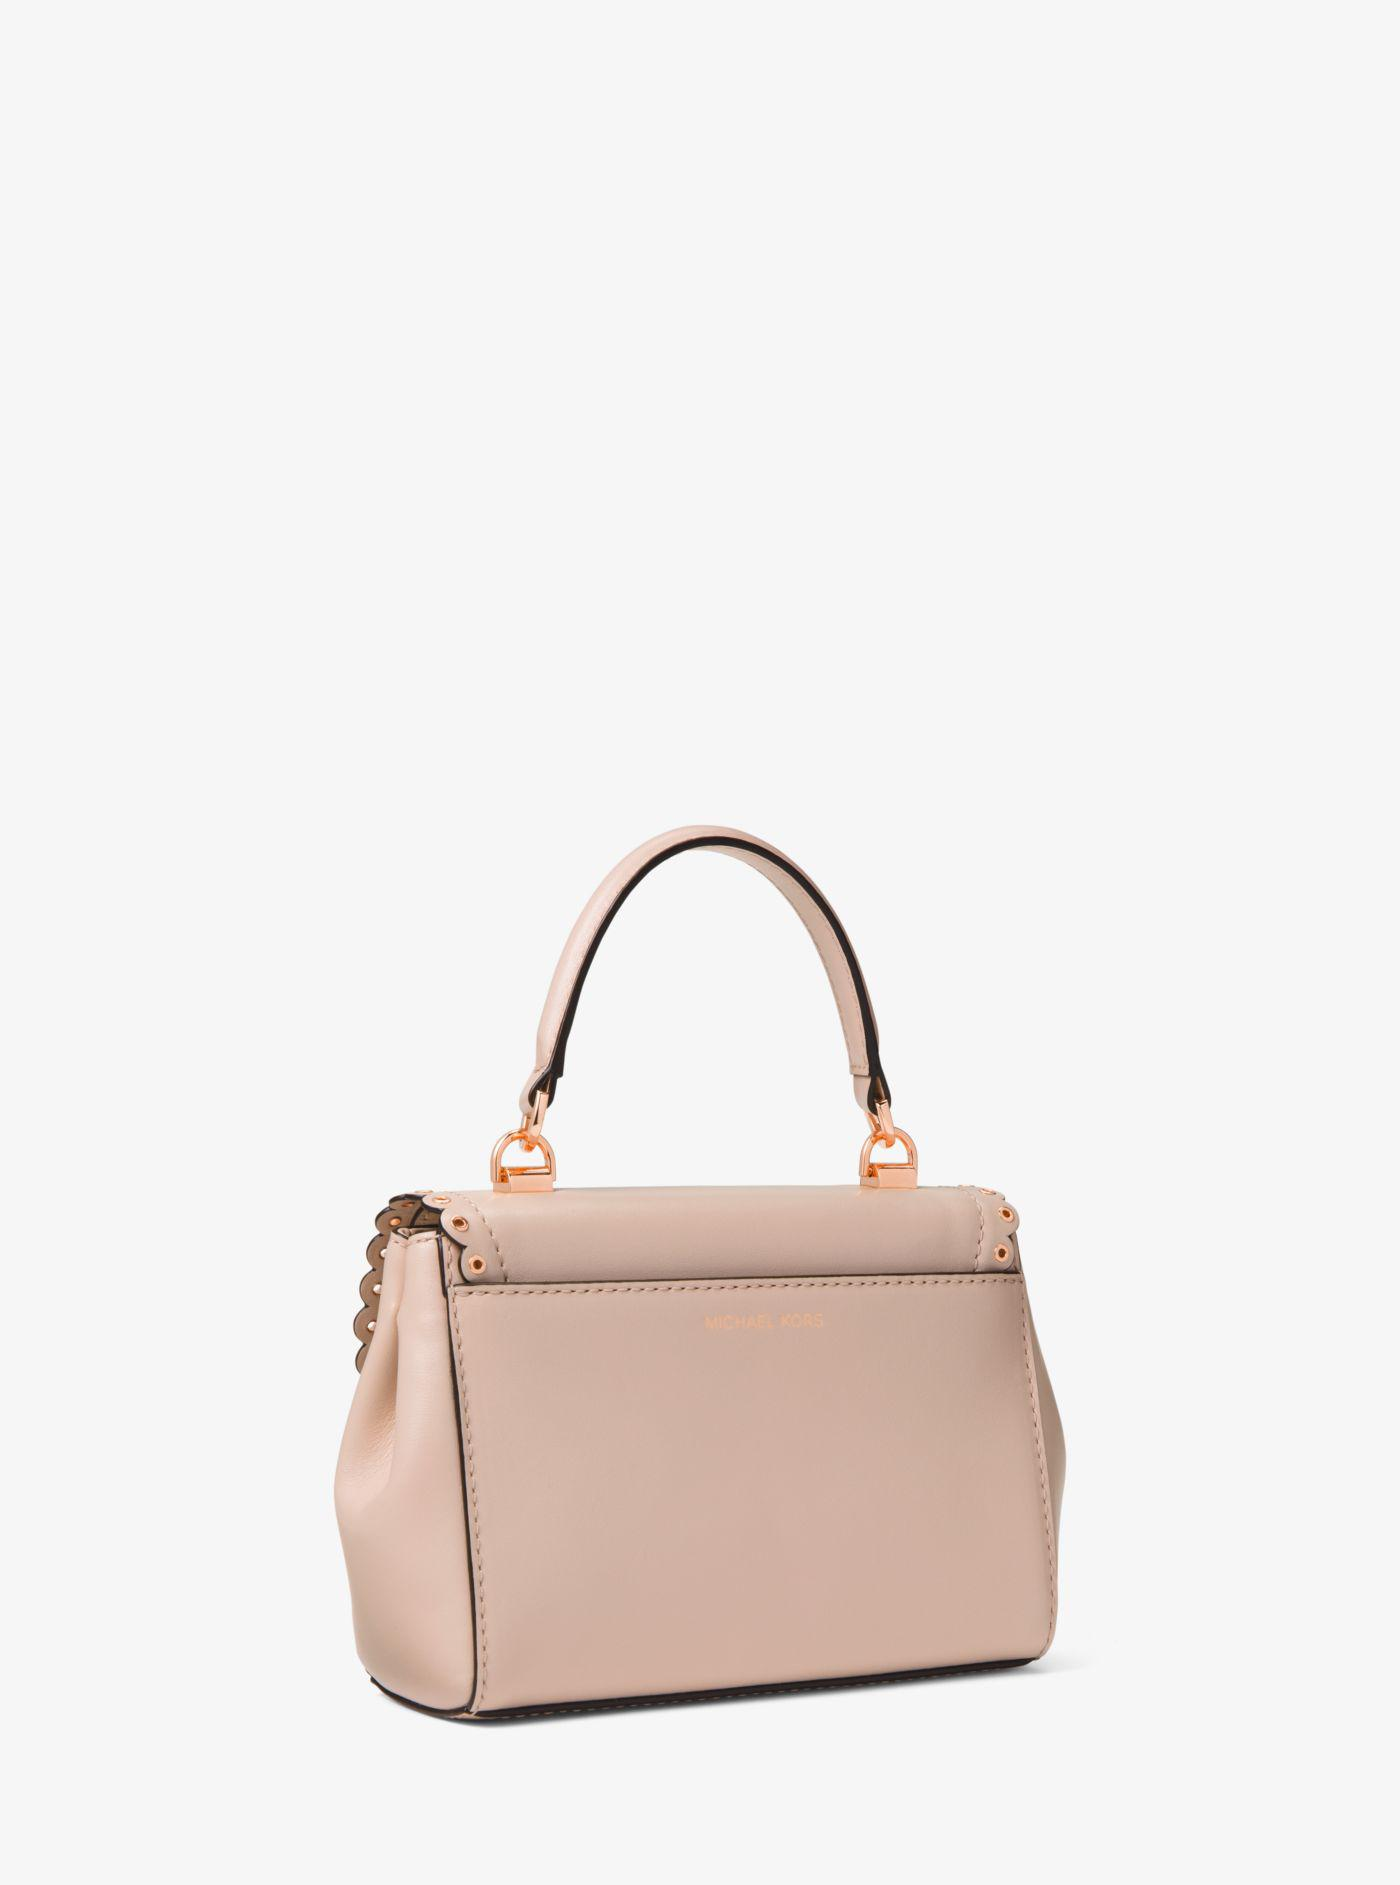 6bd8d7261d7f Michael Kors Ava Extra-small Scalloped Leather Crossbody in Pink - Lyst